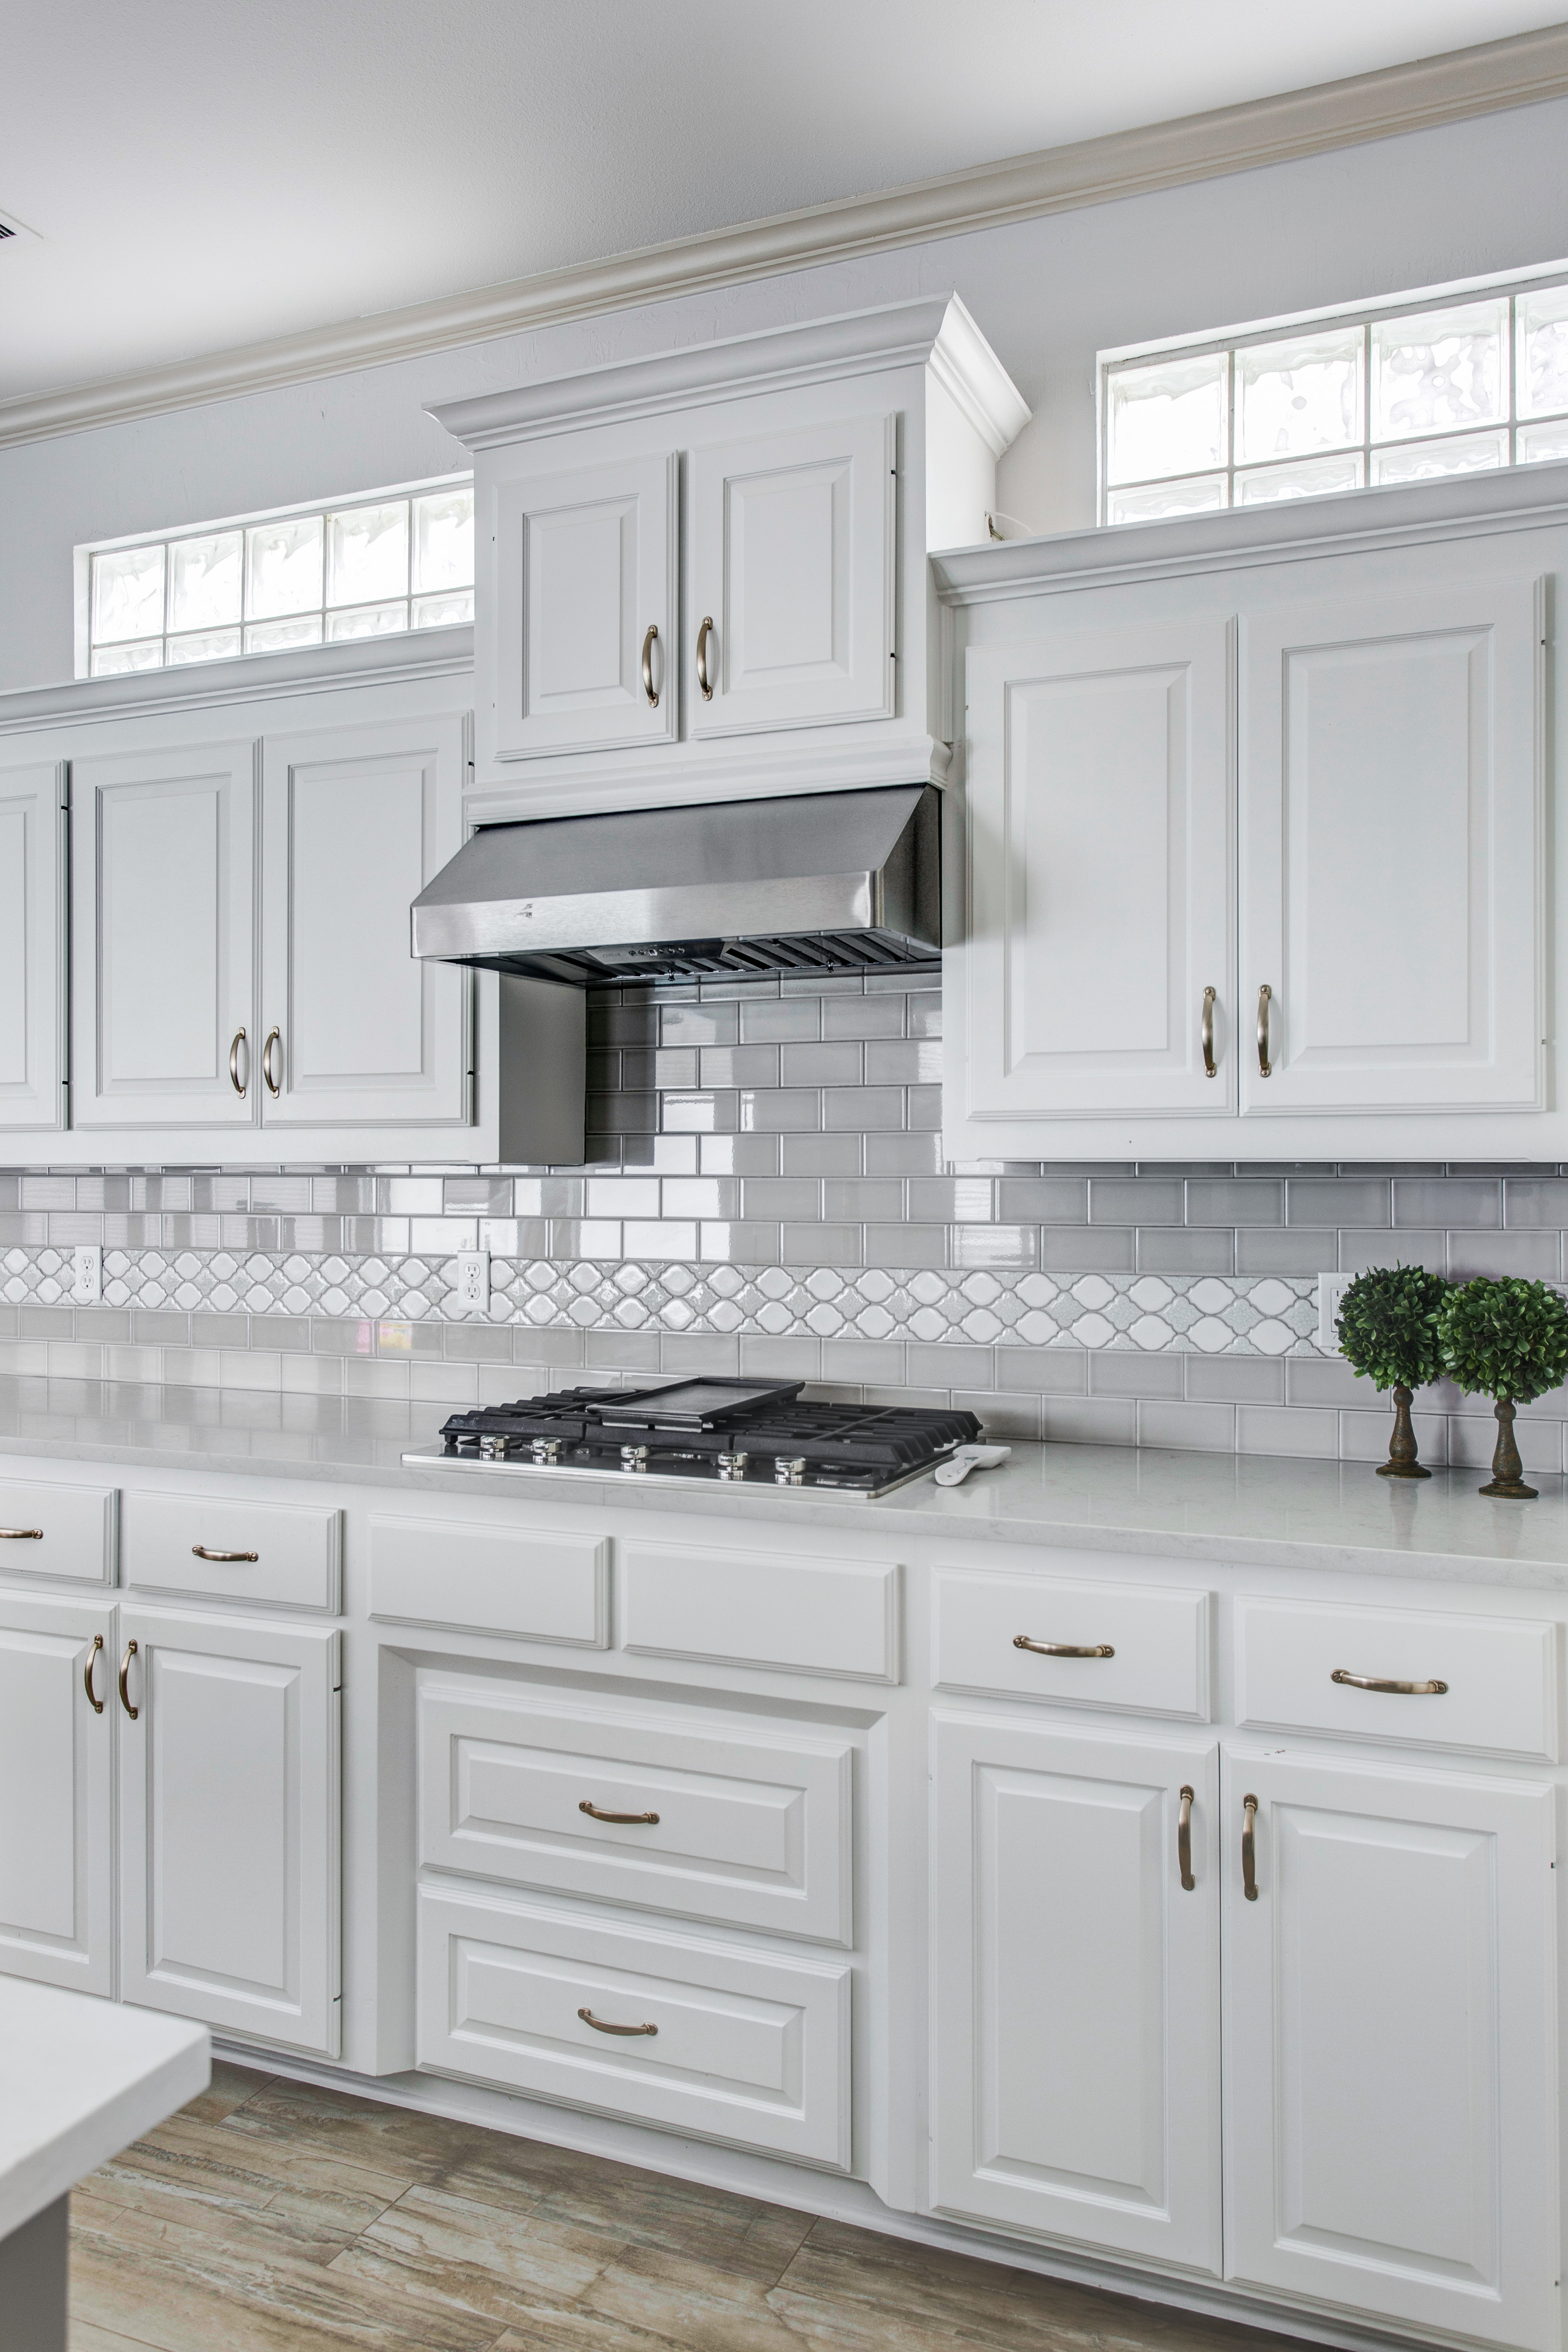 Brampton Kitchen Cabinets Jobs